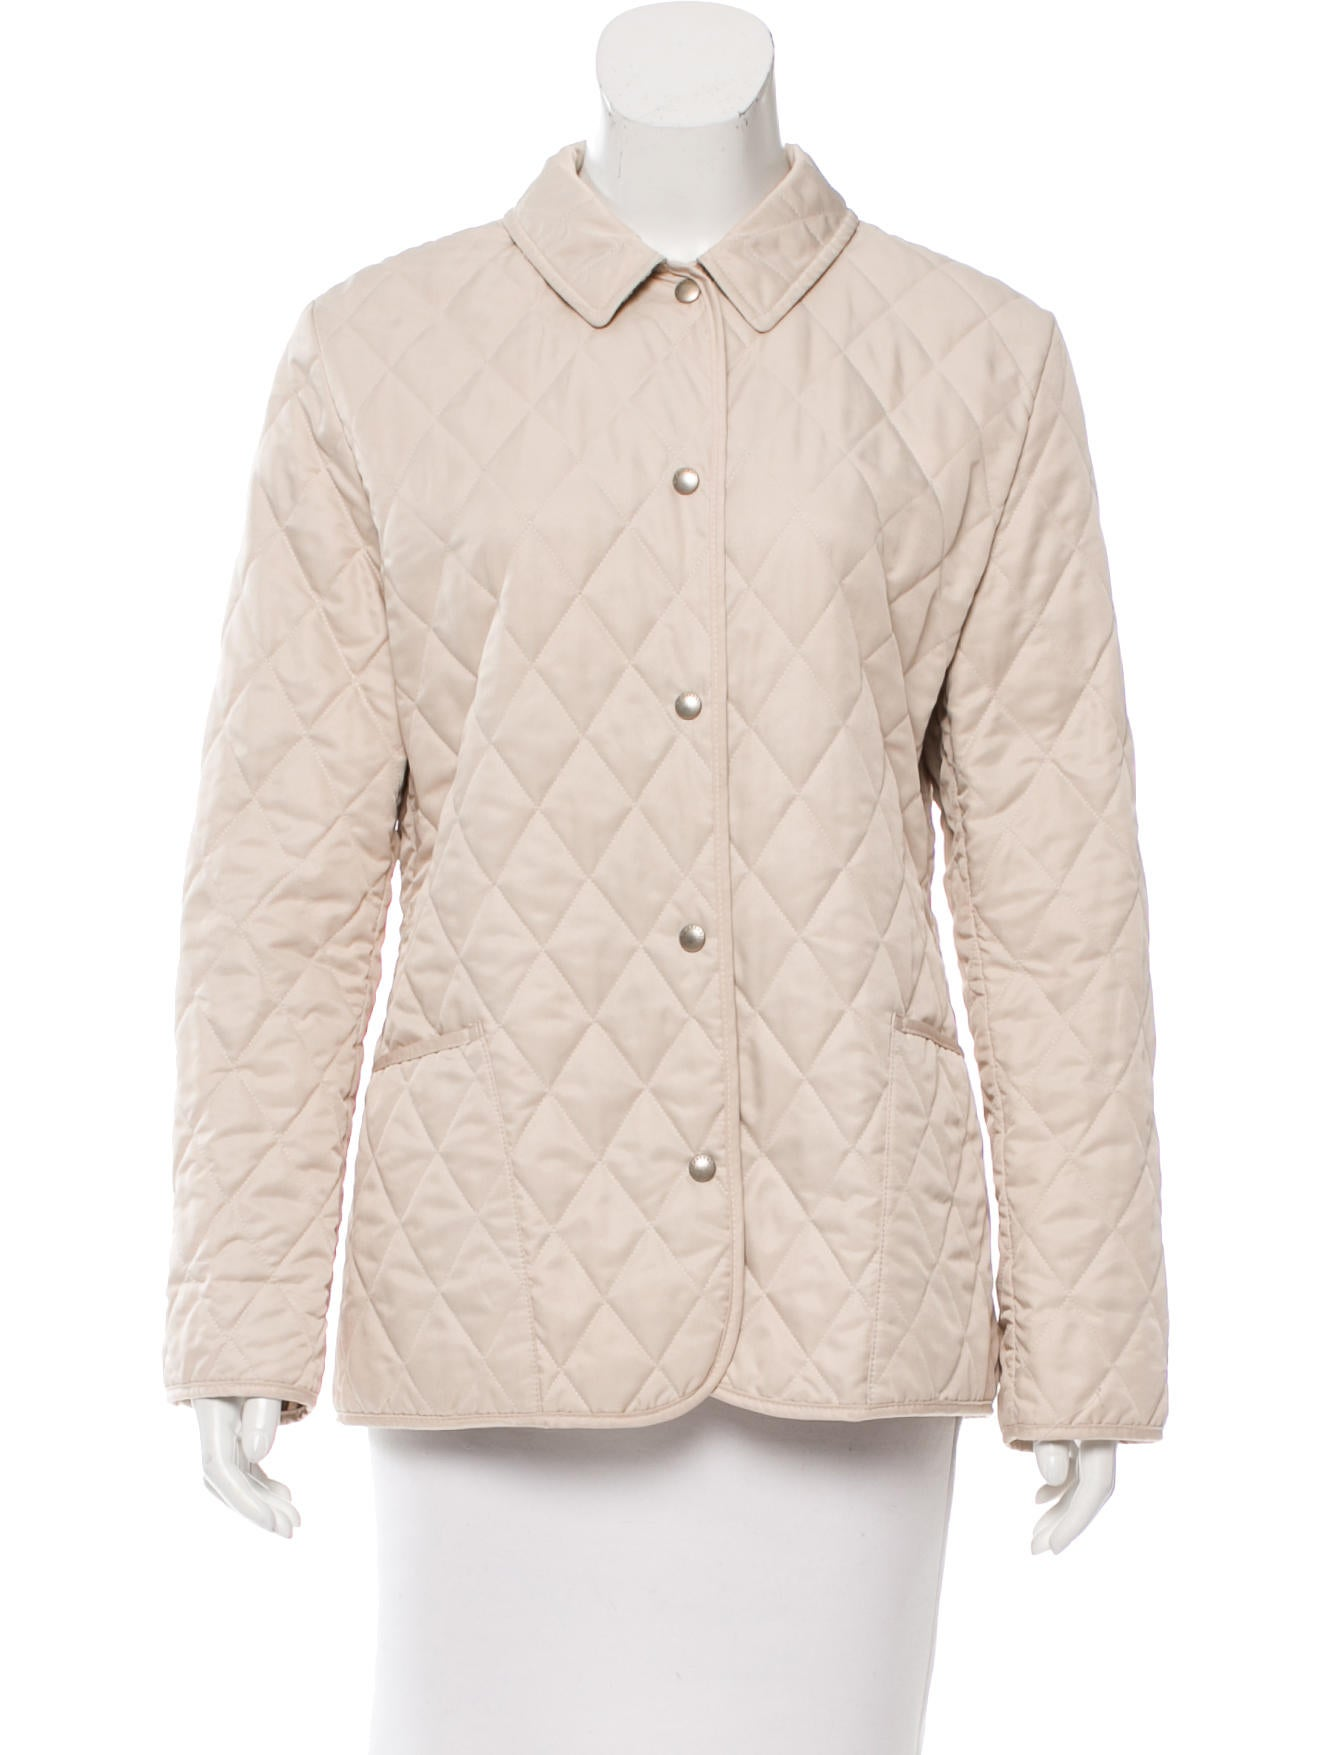 Get classic to offbeat men's jackets from Givenchy, Valentino & Moschino to name a few with our fast global delivery at Farfetch & return for free.